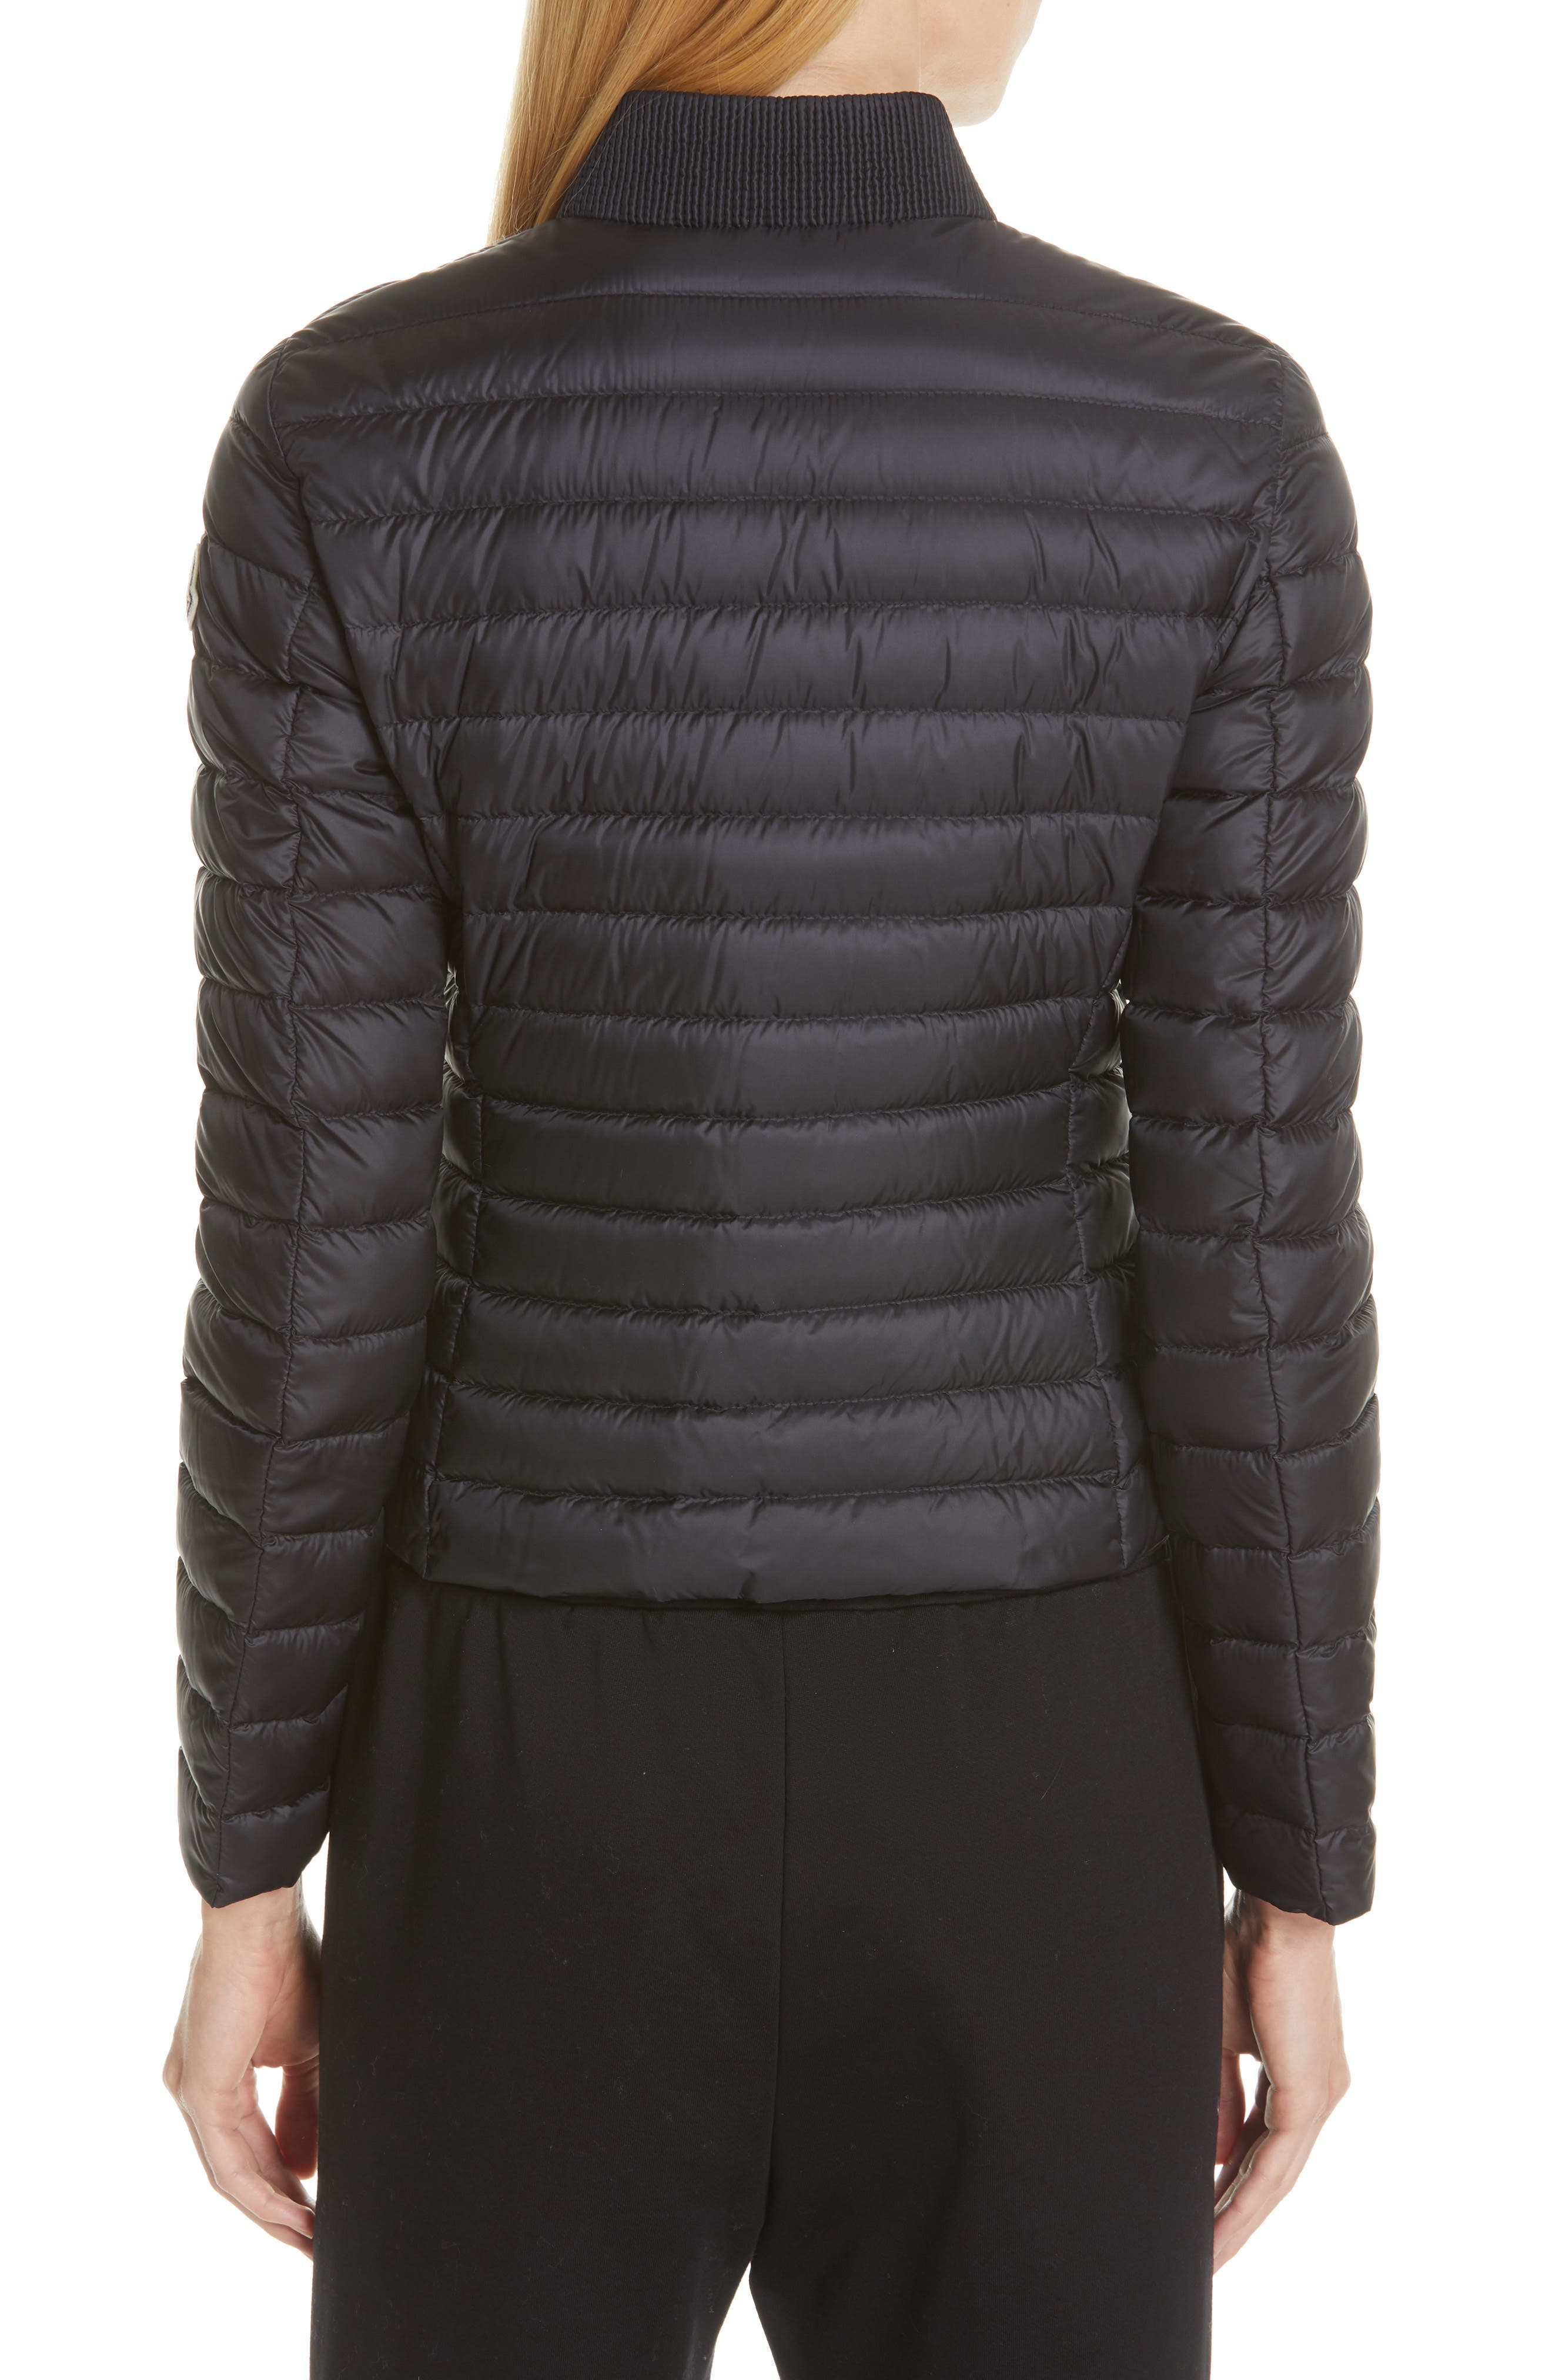 Blenca Quilted Down Jacket,                             Alternate thumbnail 2, color,                             BLACK